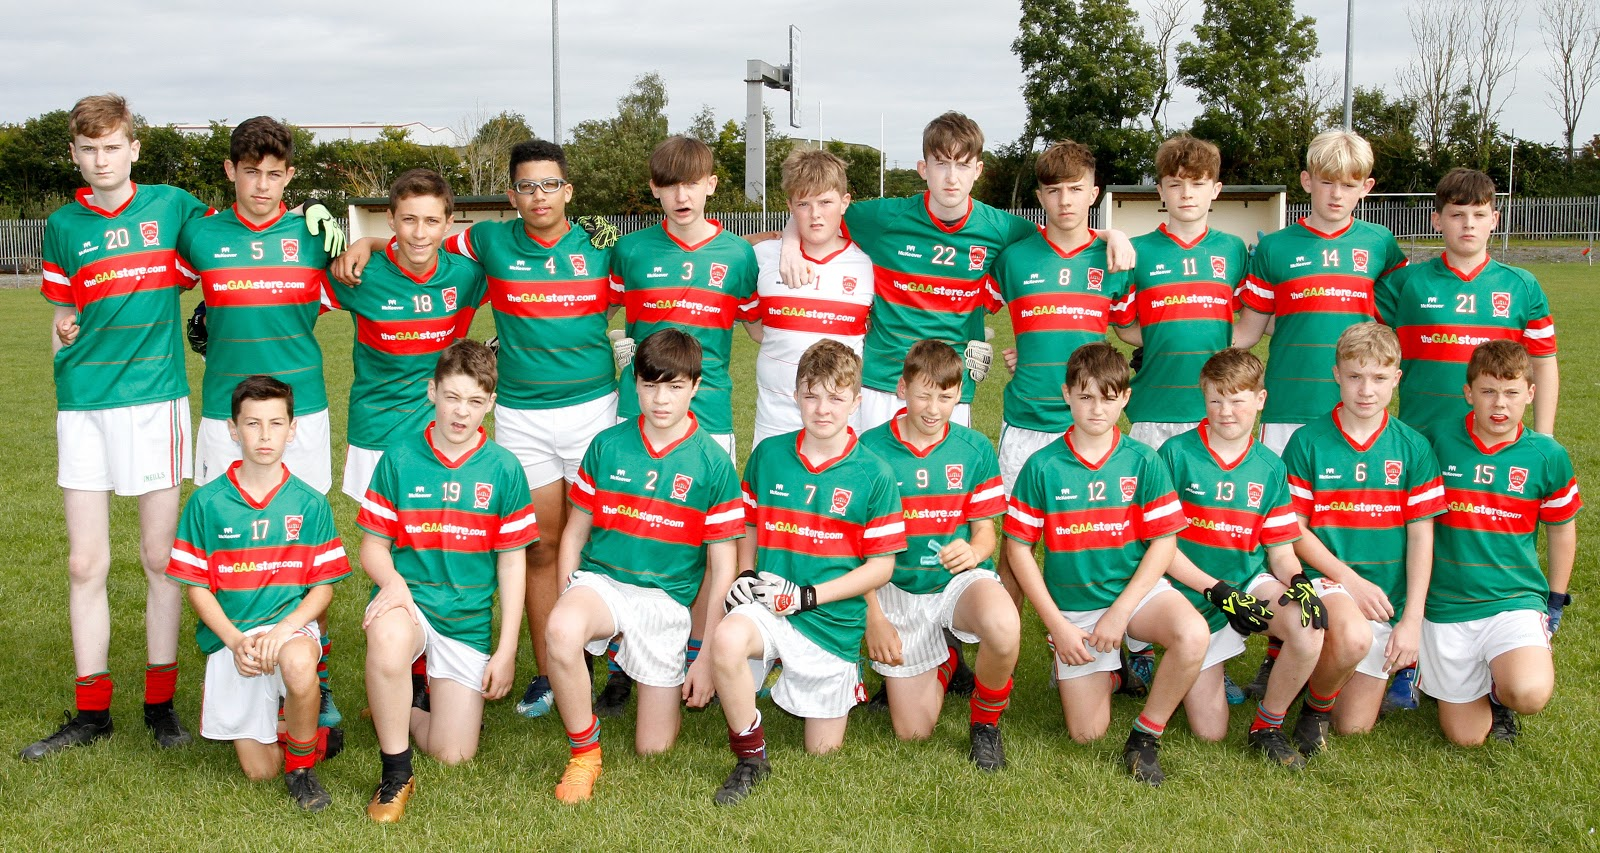 Garrycastle Under 14 team pictured ahead of their Championship clash with St. Josephs.